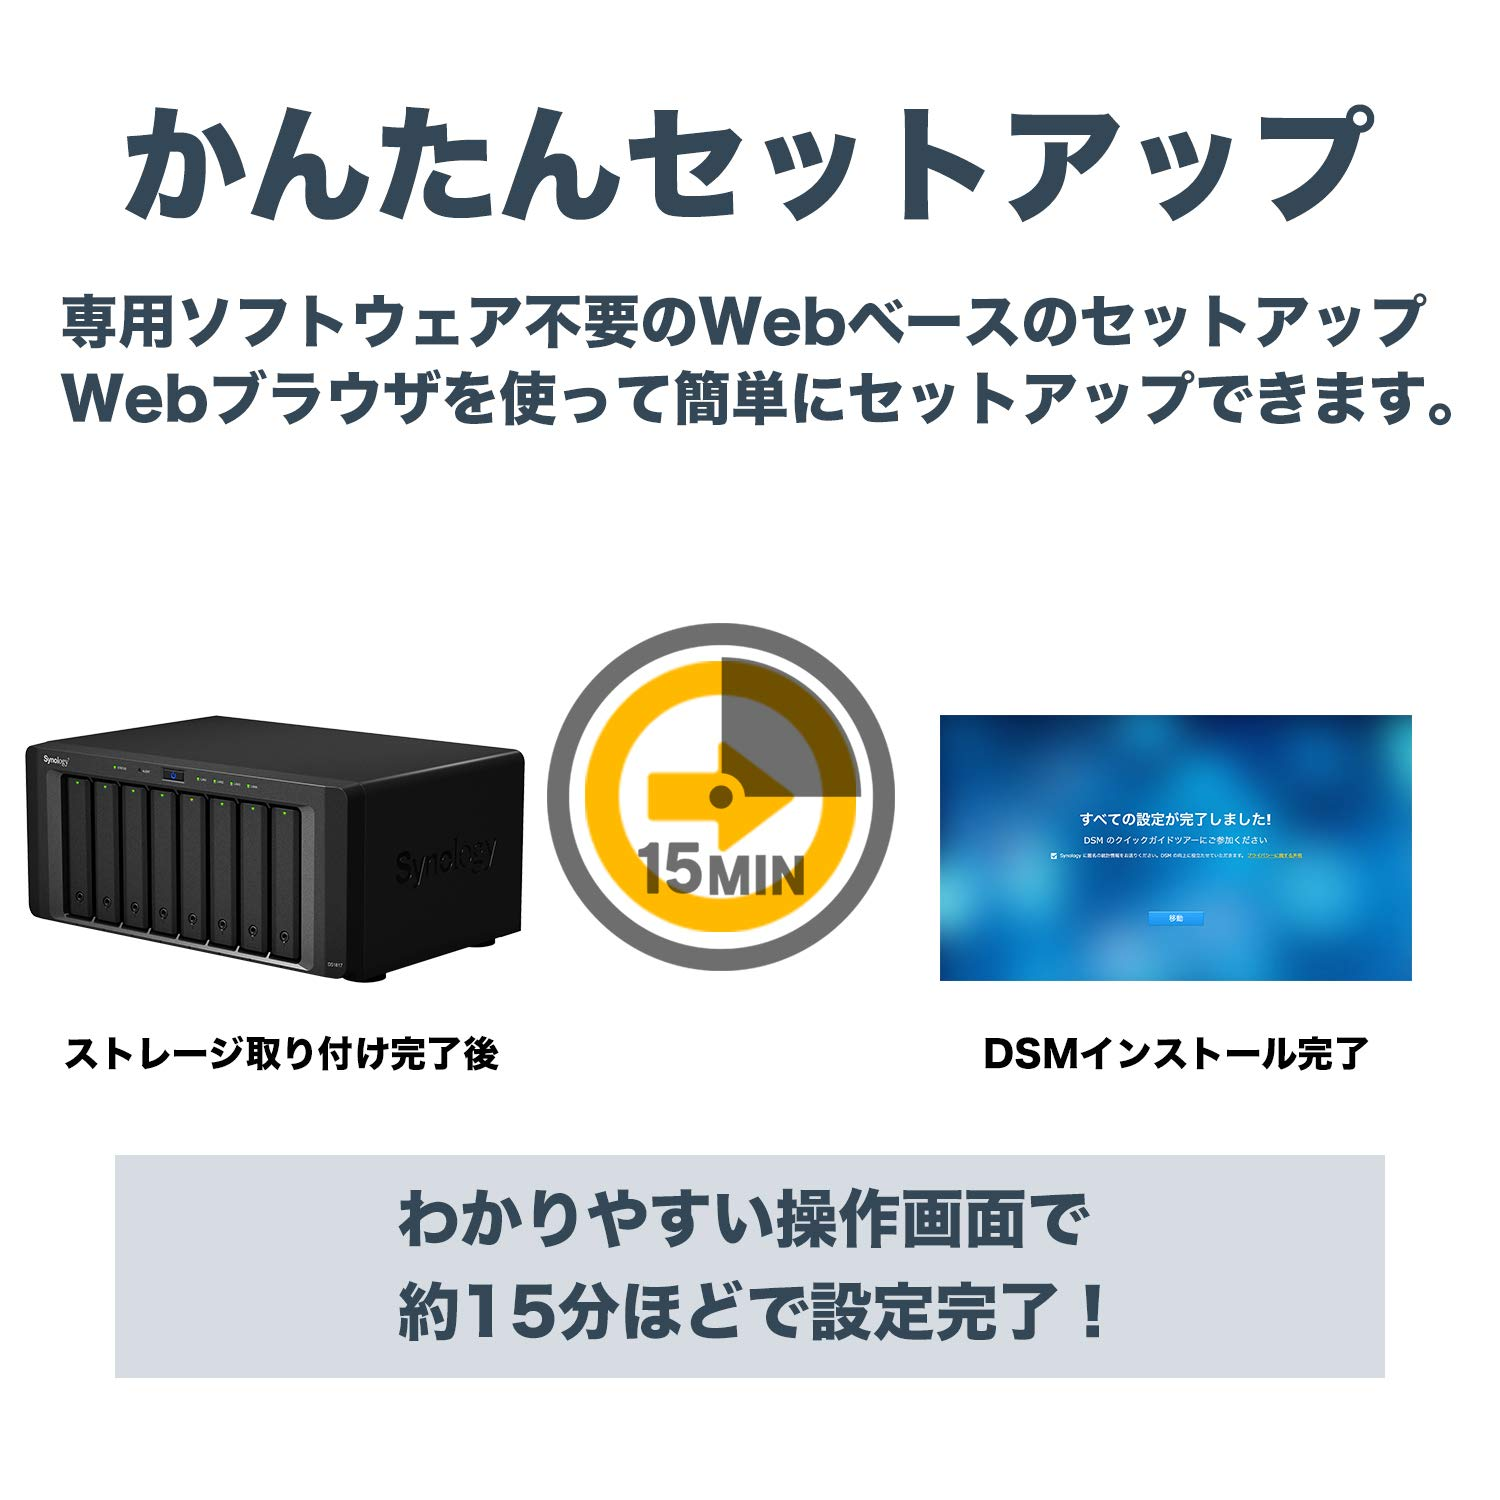 Synology 8 bay NAS DiskStation DS1817 (Diskless) by Synology (Image #2)